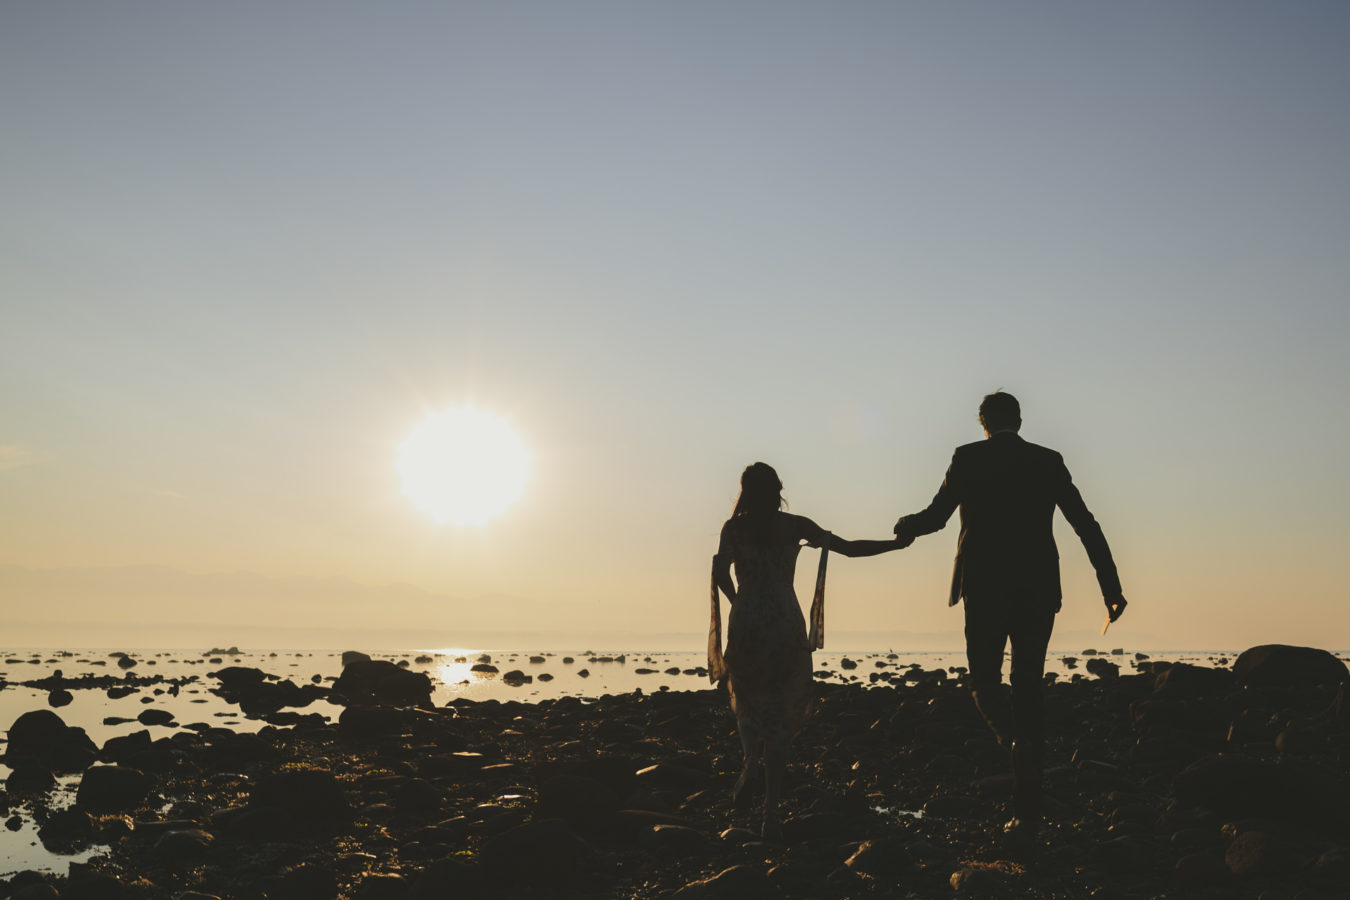 couple holding hands walking along a rocky beach silhouted by the sunset